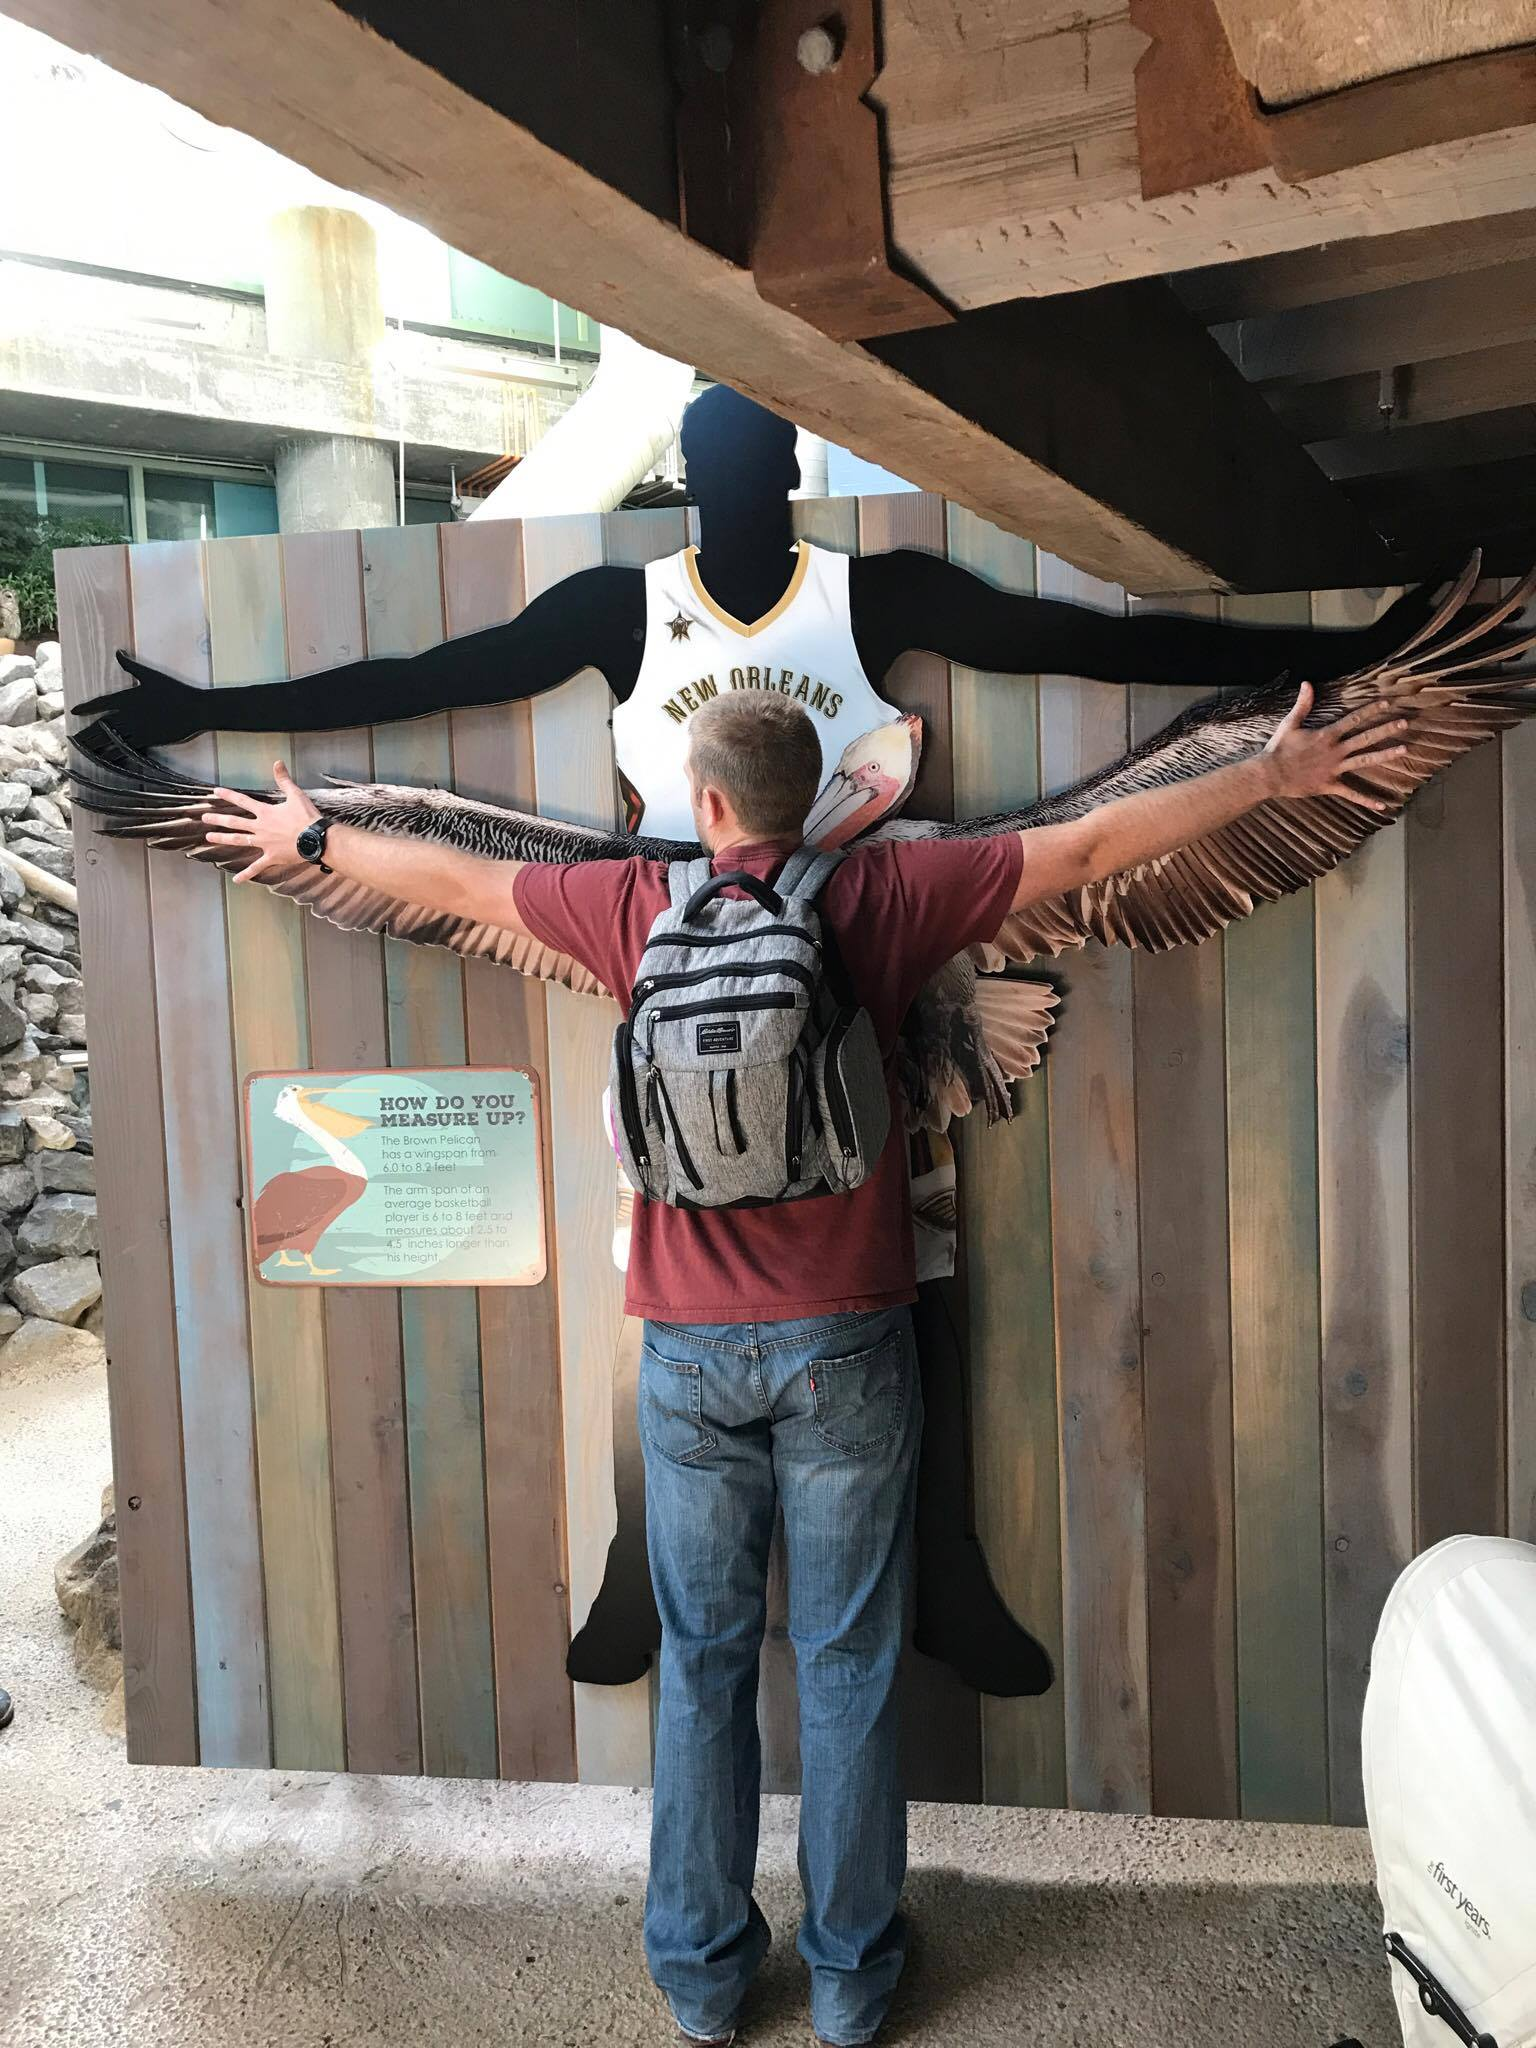 Jimmy comparing his wingspan to a Brown Pelican's wingspan!